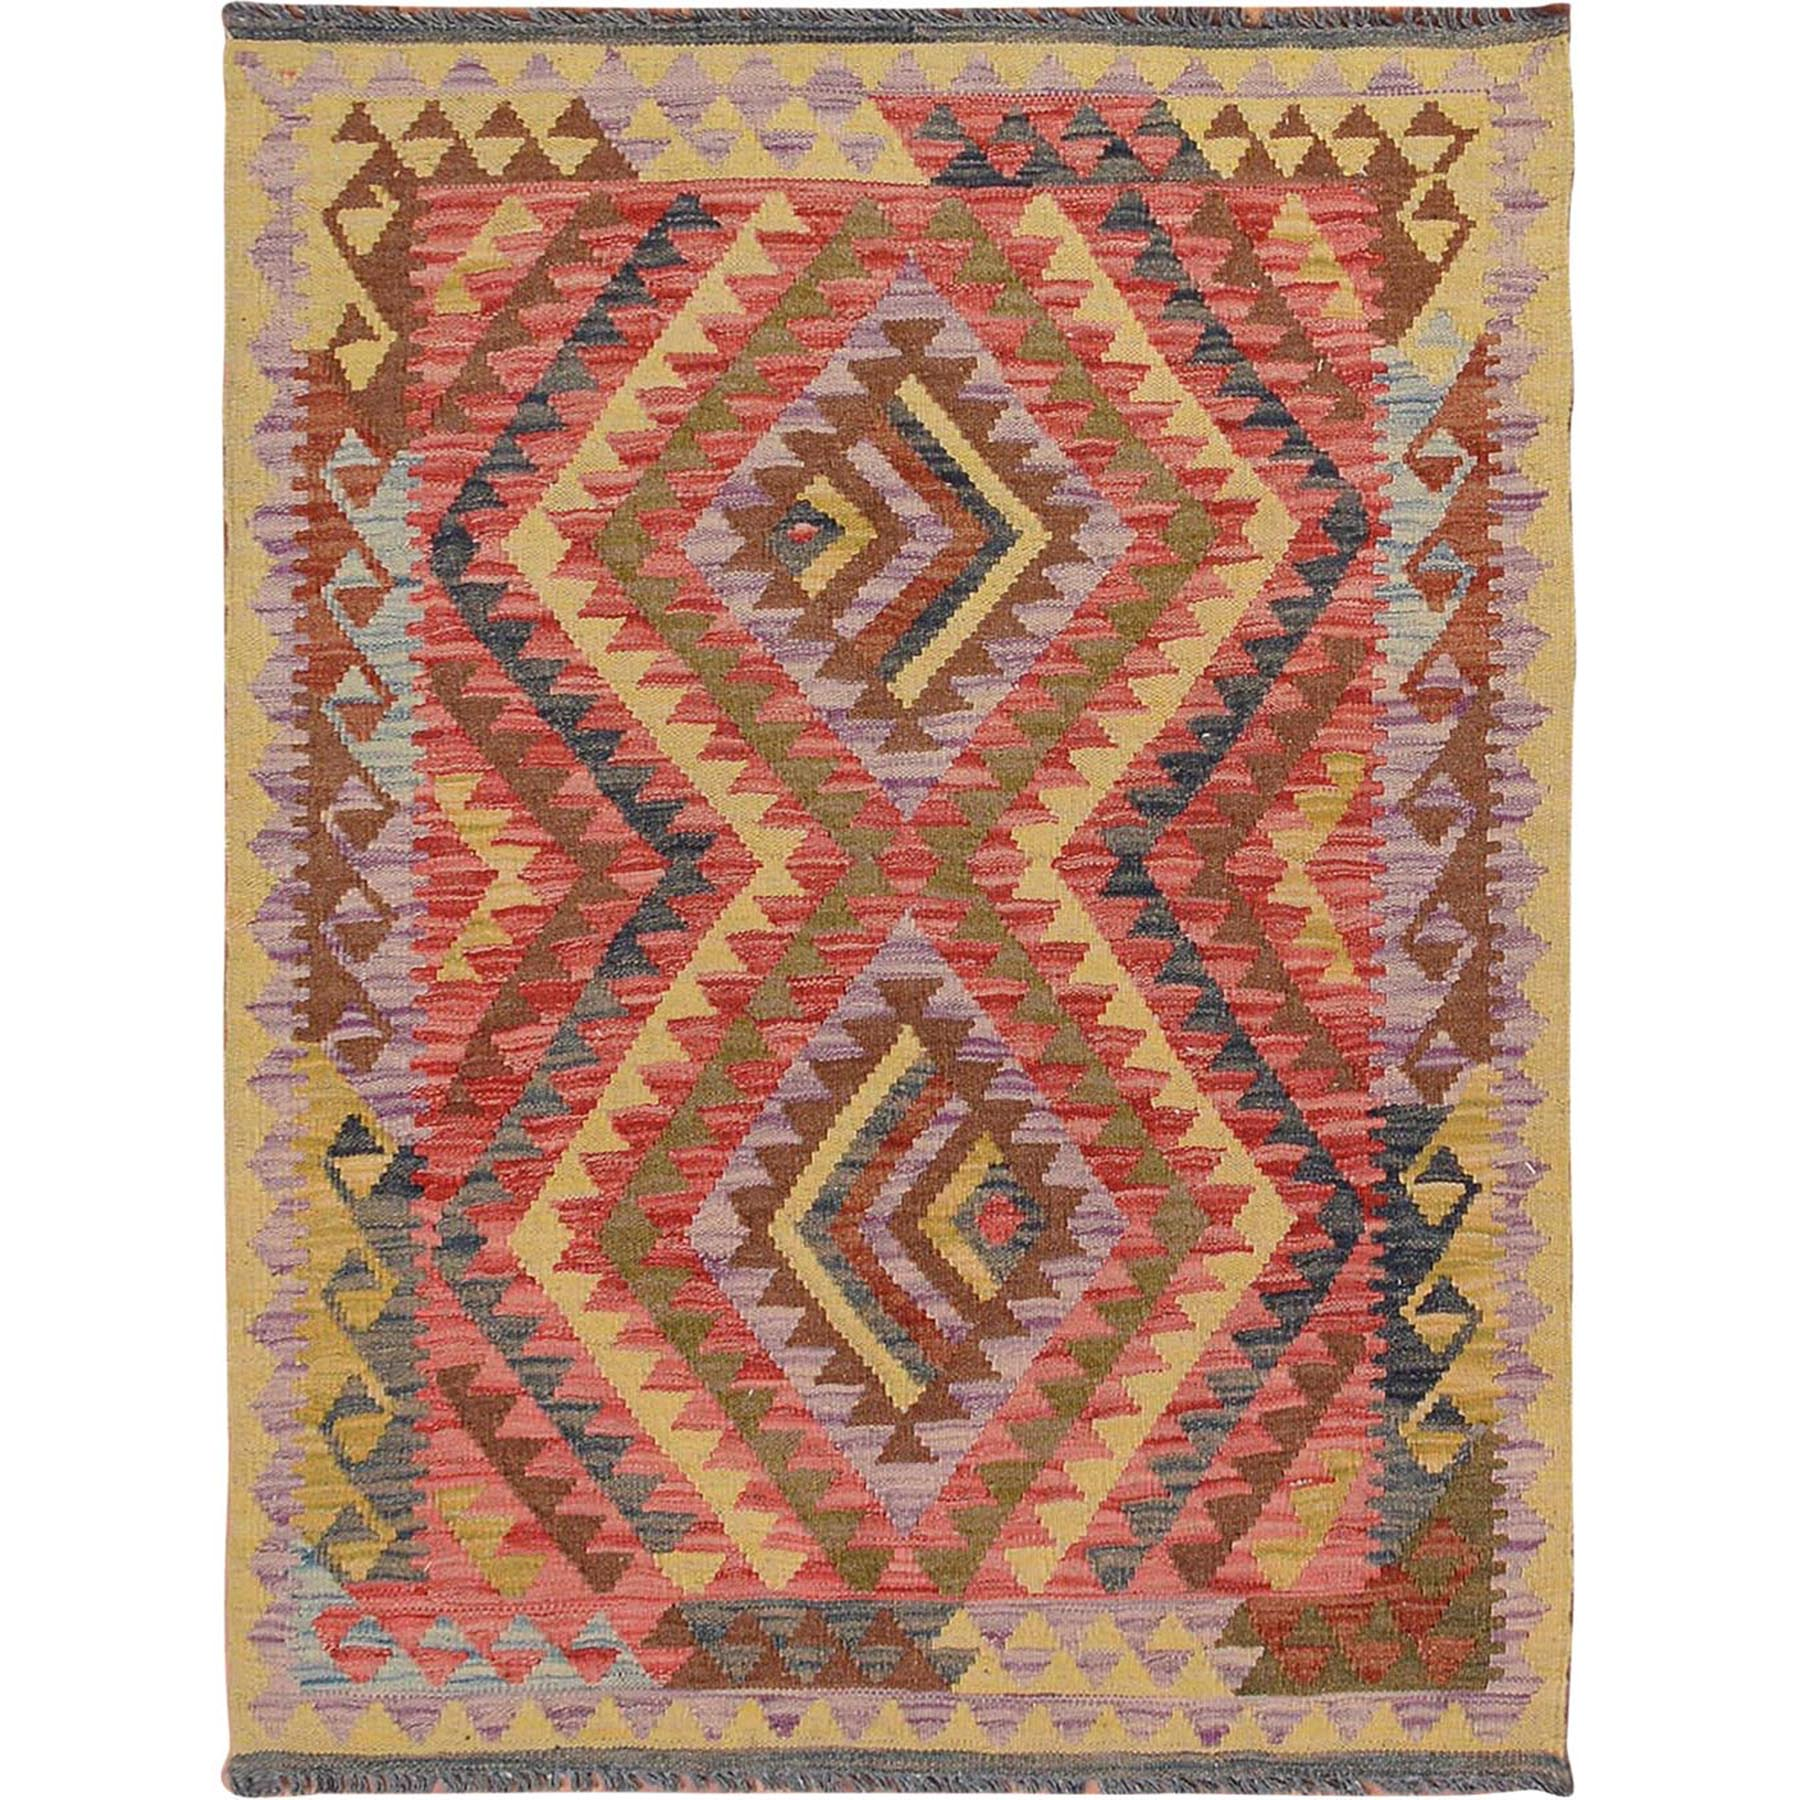 3'x4' Colorful Afghan Reversible Kilim Pure Wool Hand Woven Oriental Rug